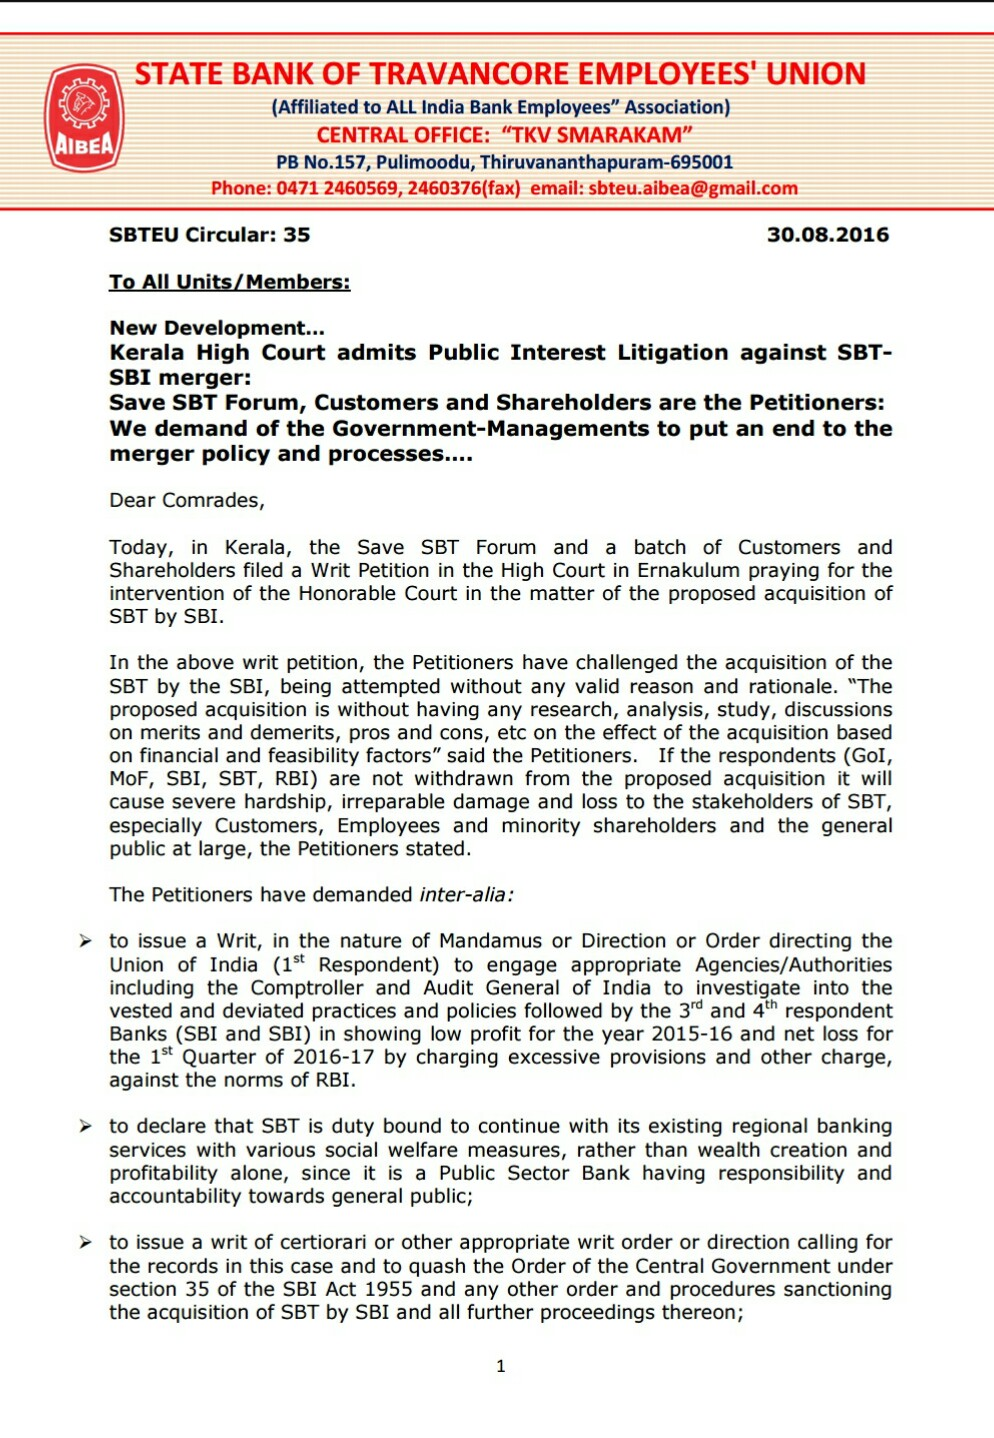 Customers & Shareholders filed petition to don't merge SBT with SBI in Kerala High Court